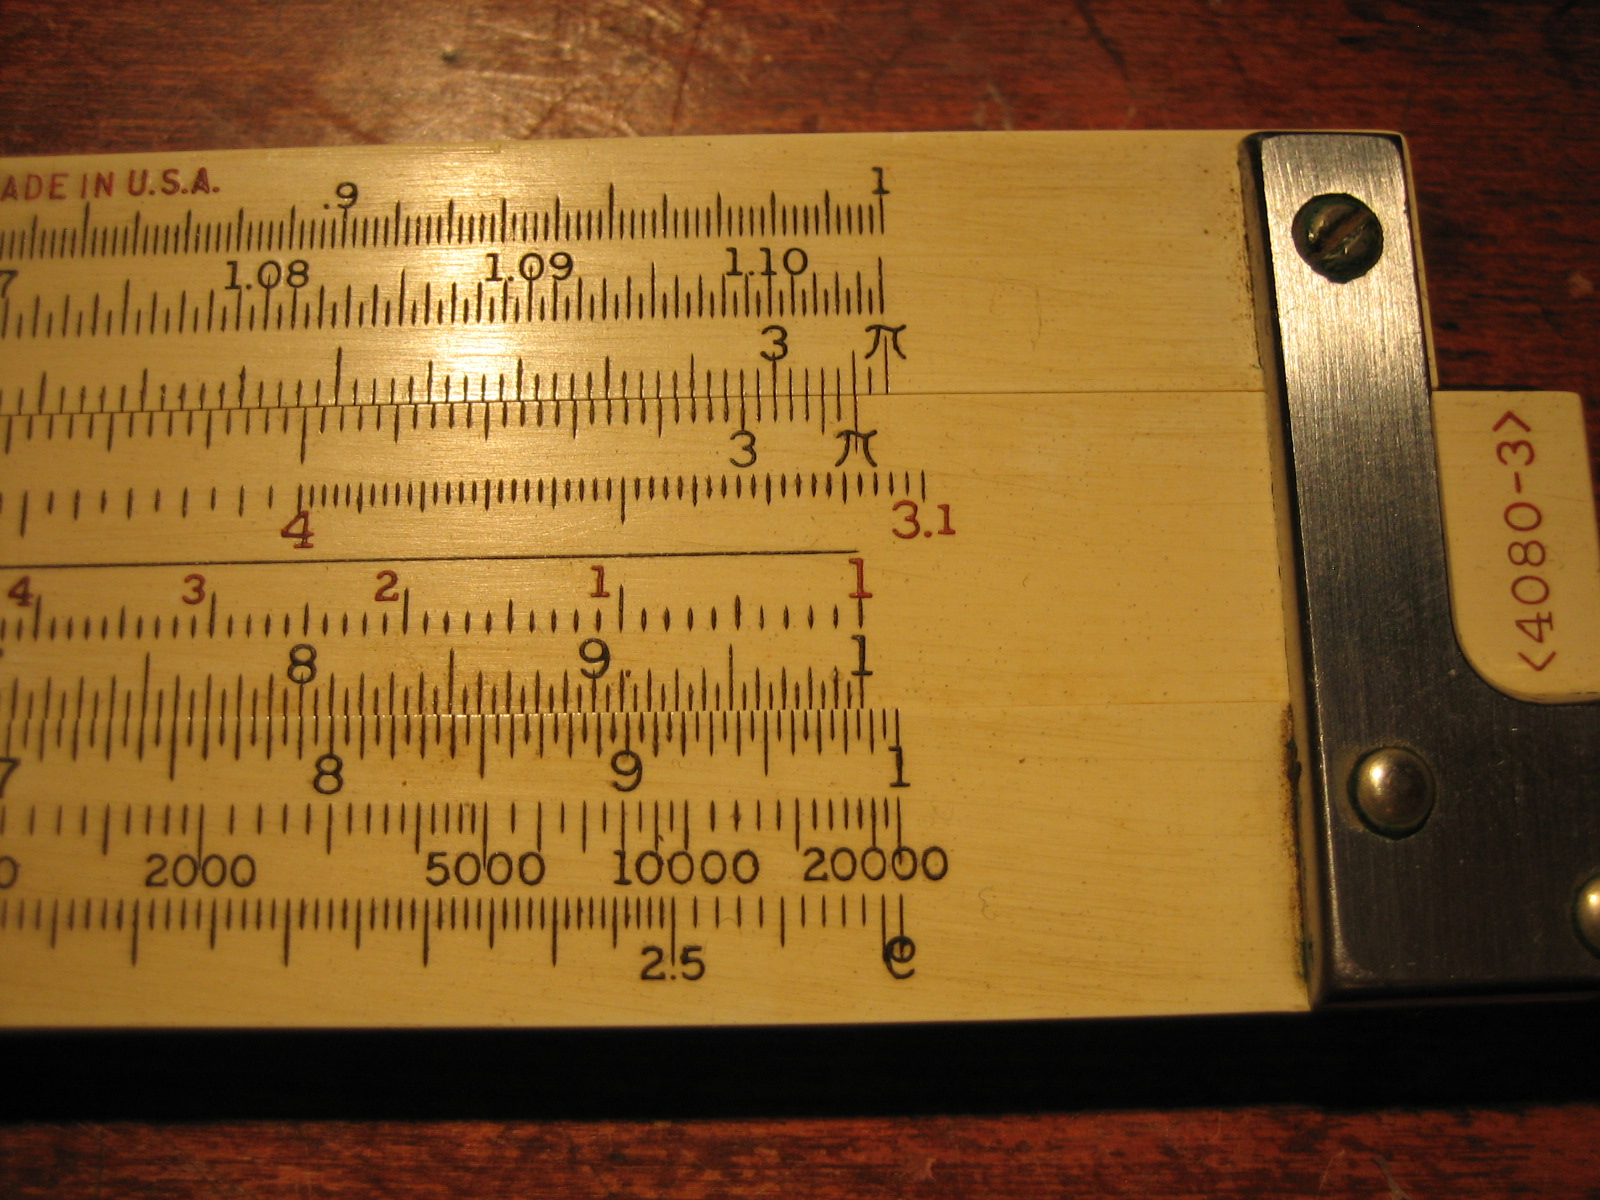 keuffel & esser slide rule manual